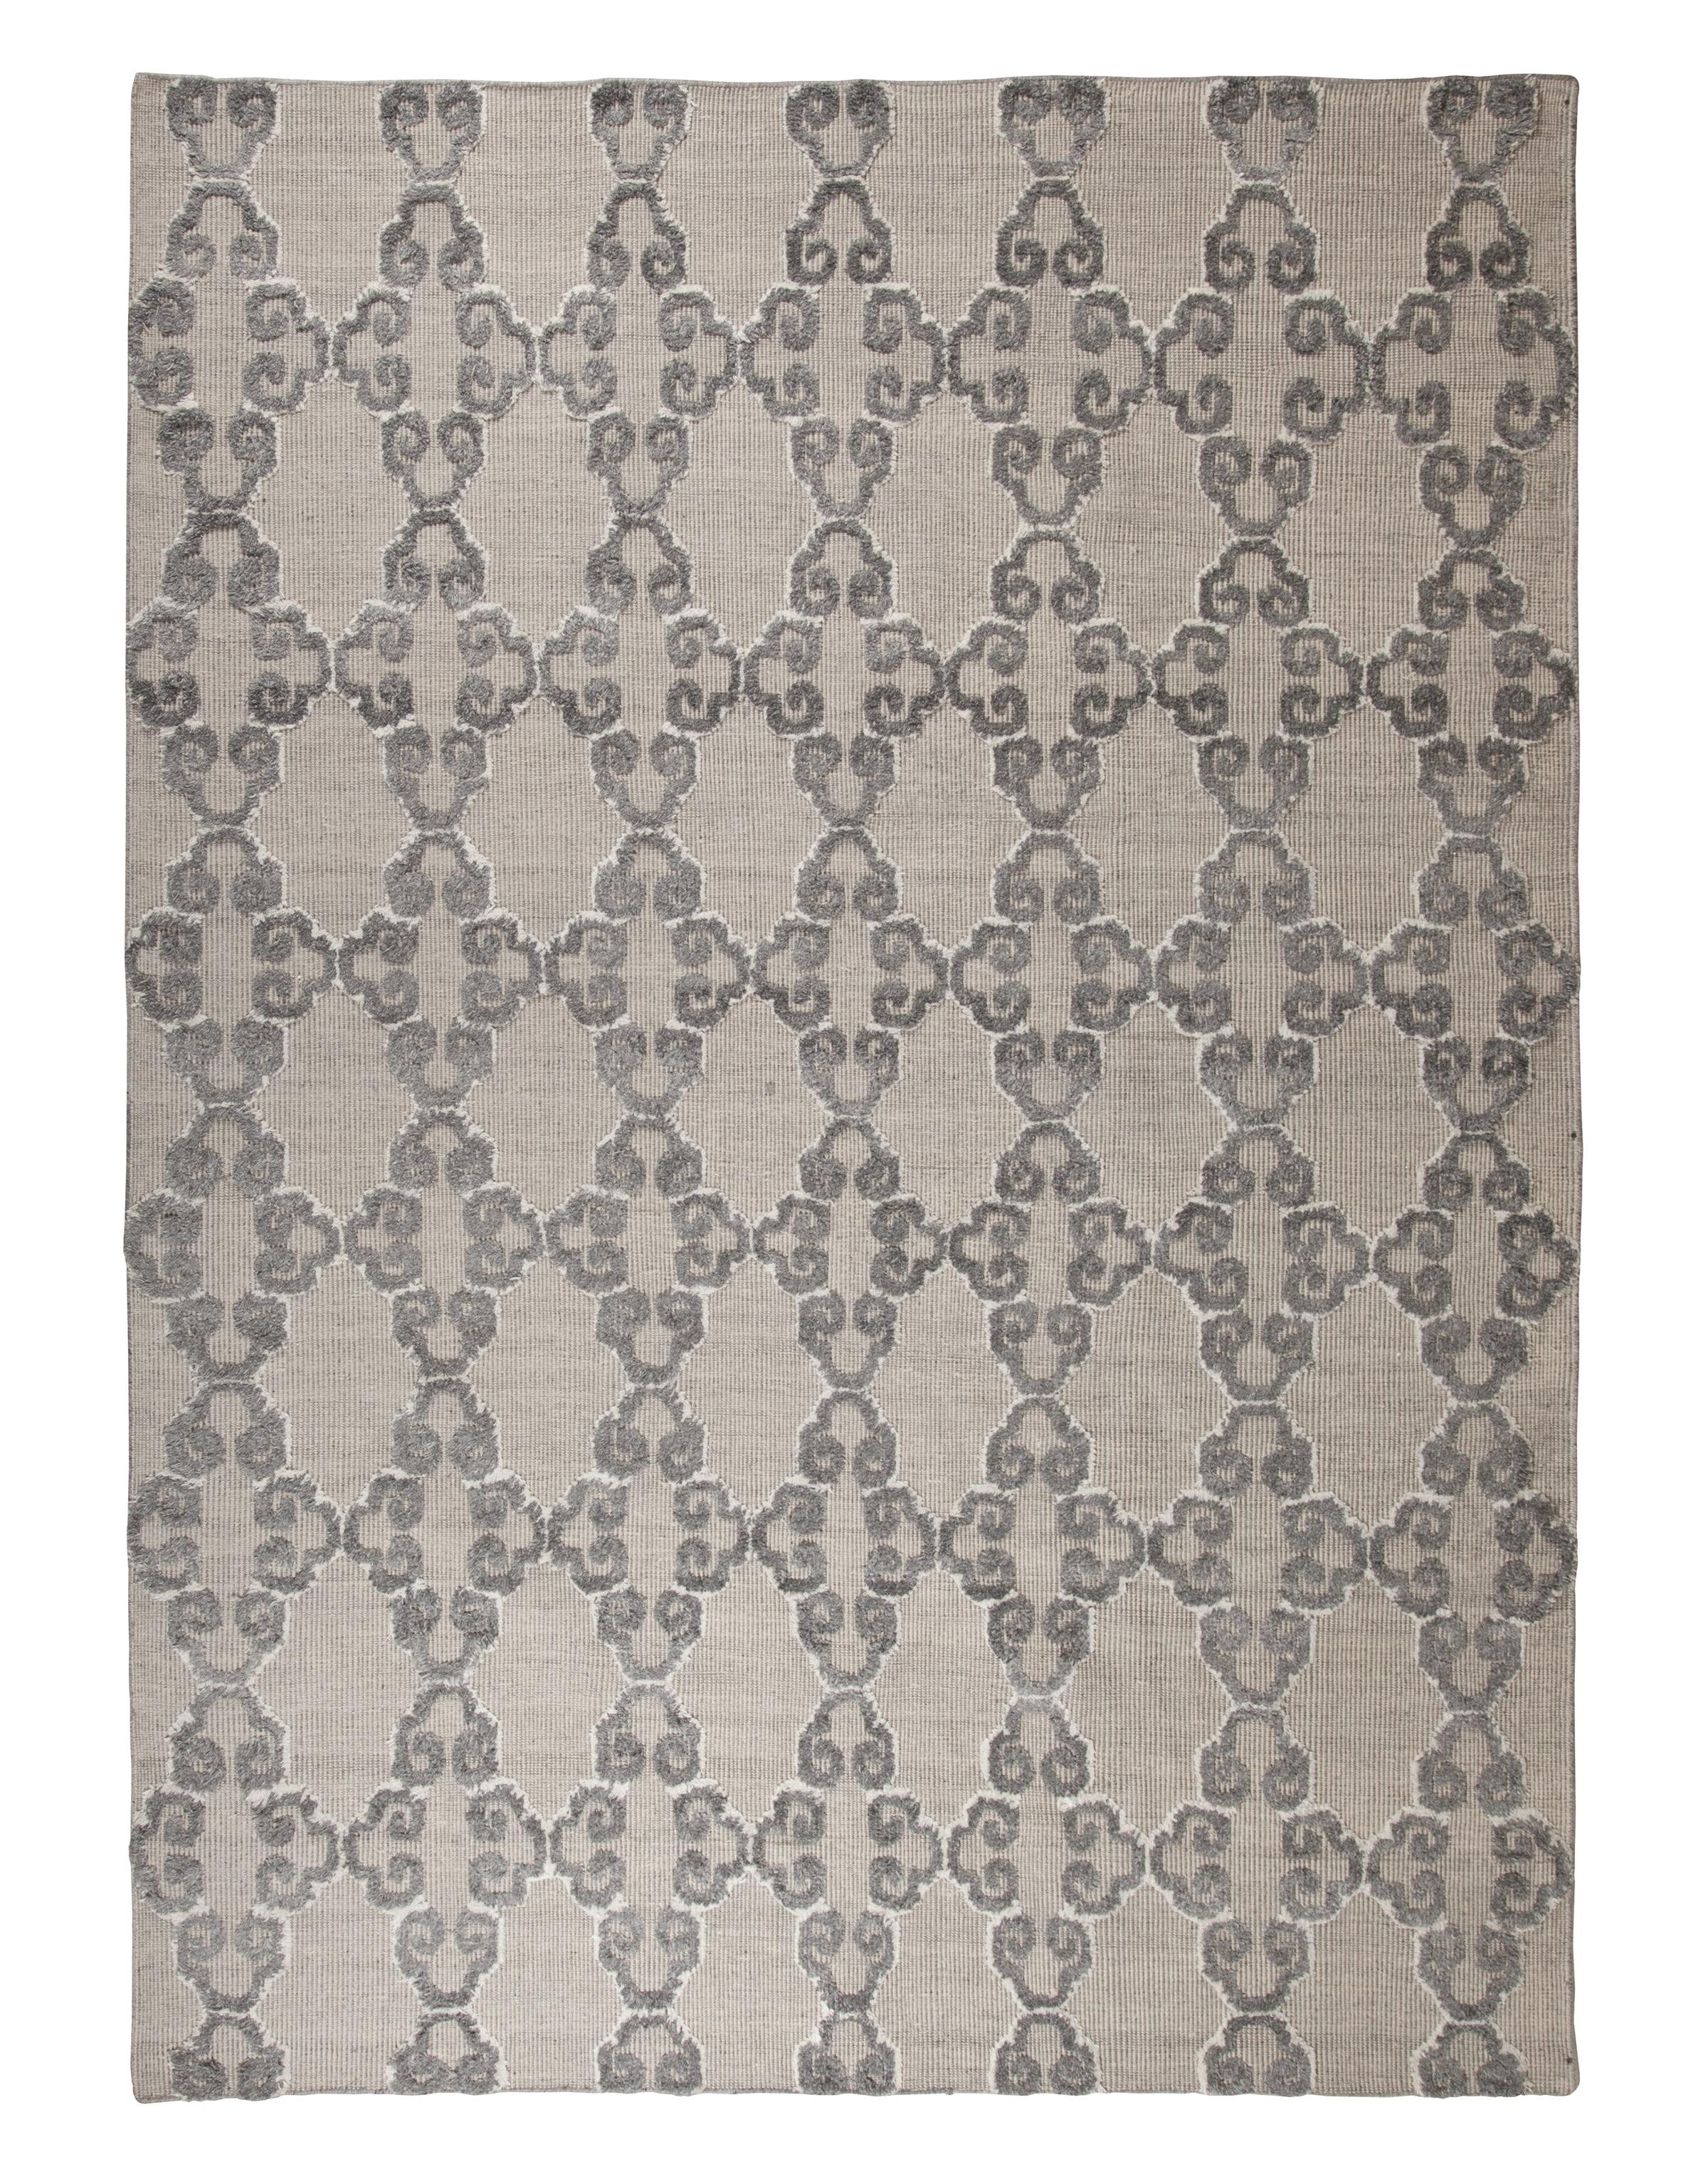 Signature Design by Ashley Traditional Classics Area Rugs Patterned - Gray/White Large Rug - Item Number: R401461